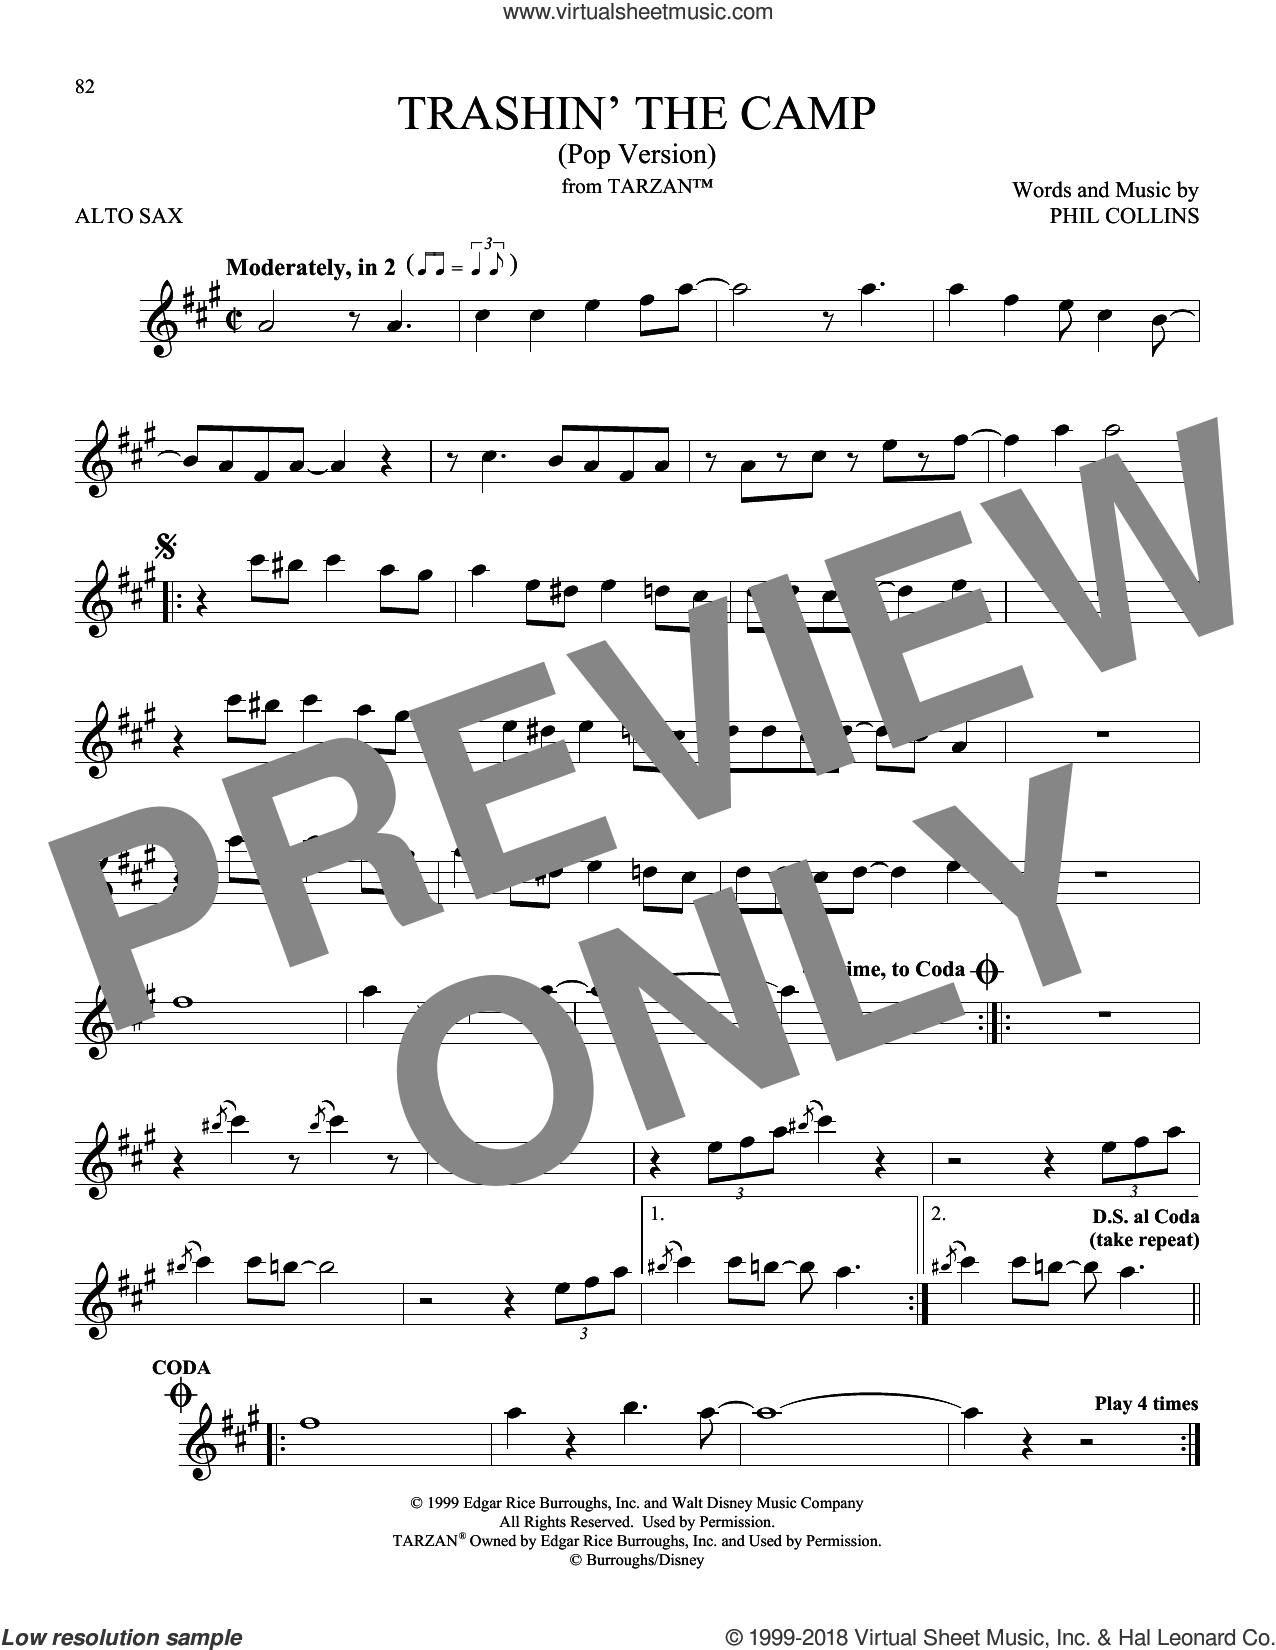 Trashin' The Camp (Pop Version) sheet music for alto saxophone solo by Phil Collins, intermediate skill level